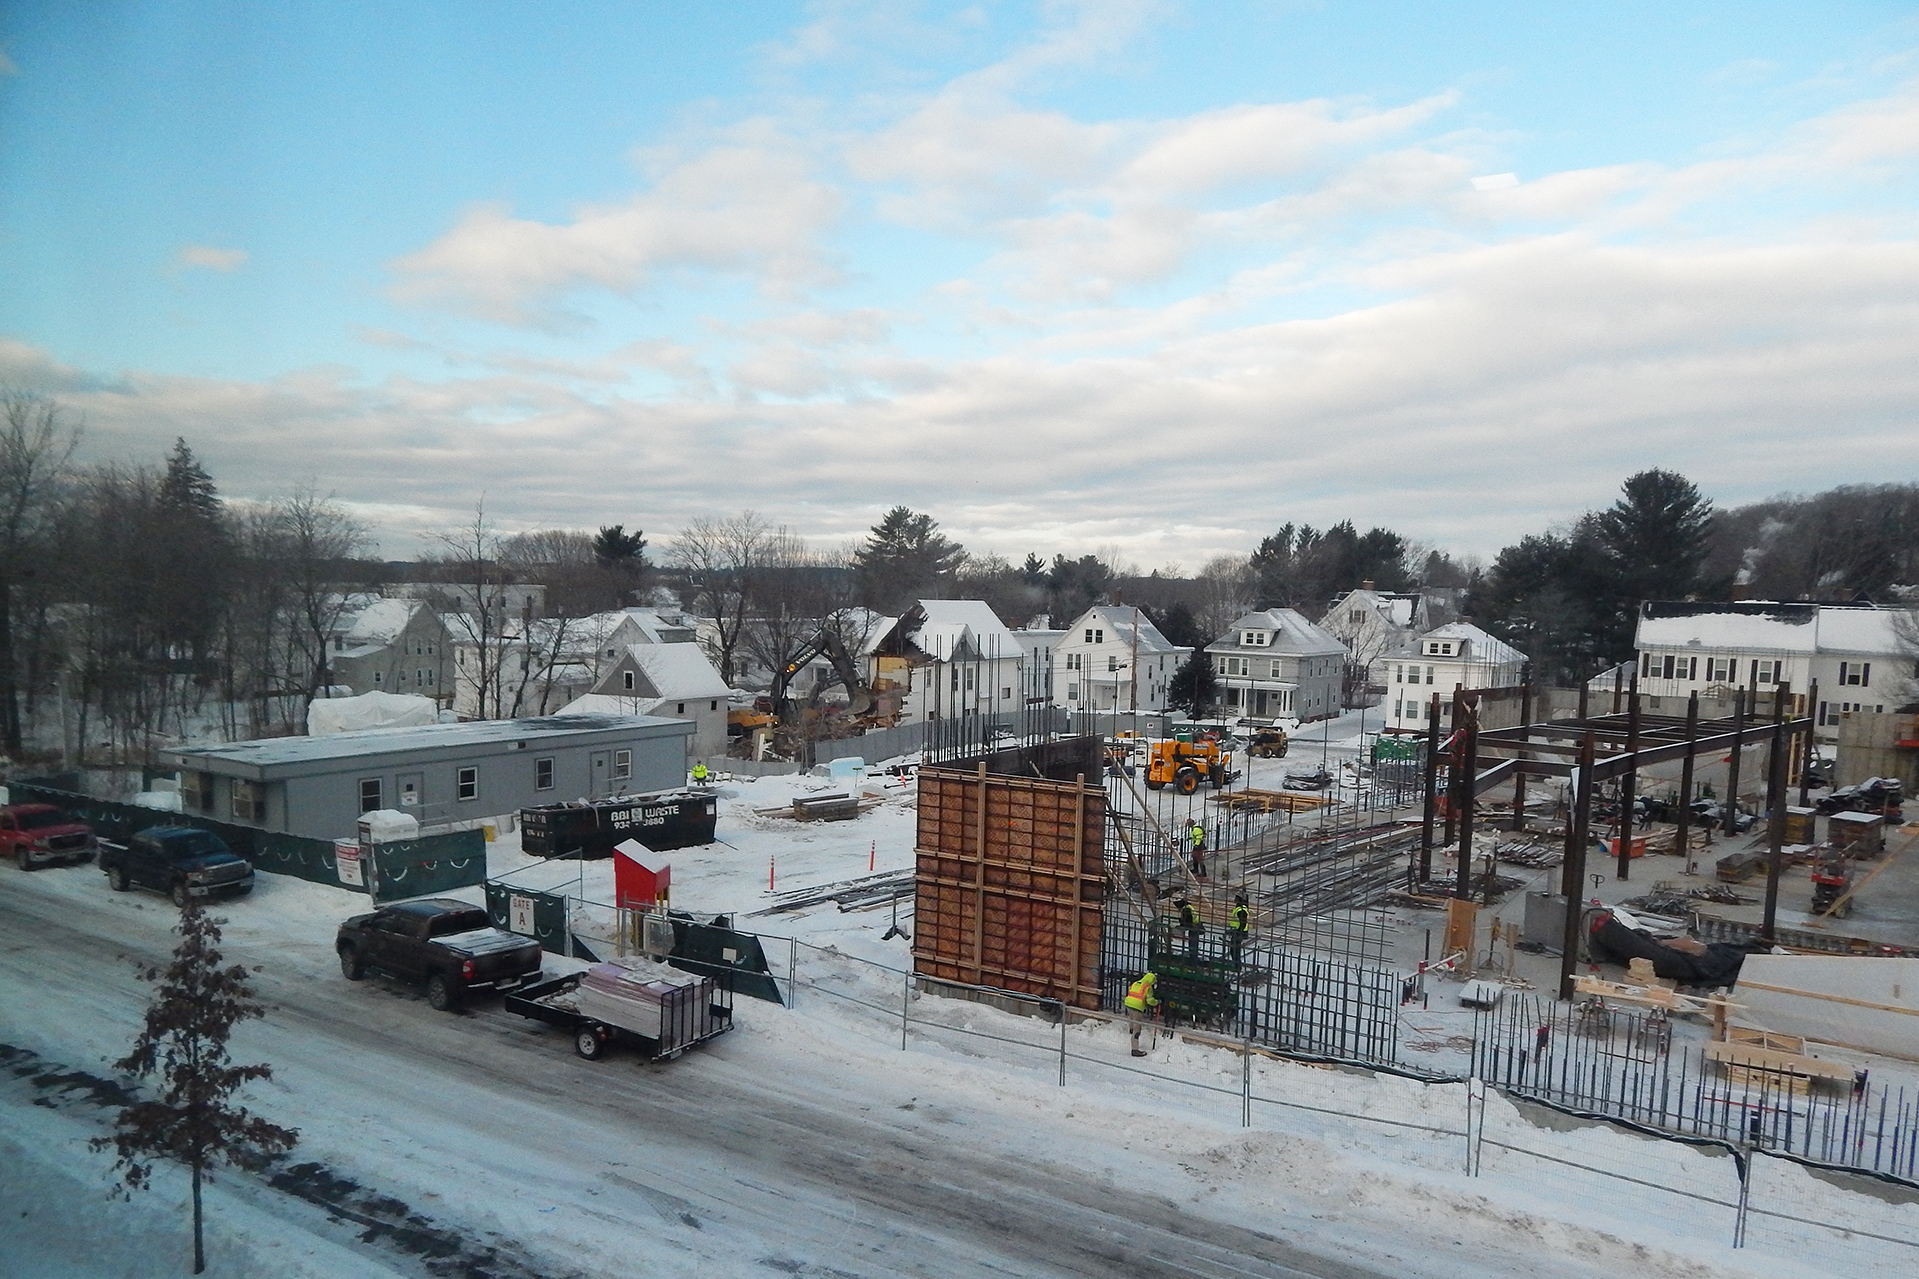 Taken from the third-floor of Chu Hall, facing the Bonney construction site from the east, this Jan. 7 view shows 137 Nichols St. being demolished at center and, nearer the camera, rodbusters assembling rebar for new wall sections at Bonney. (Doug Hubley/Bates College)